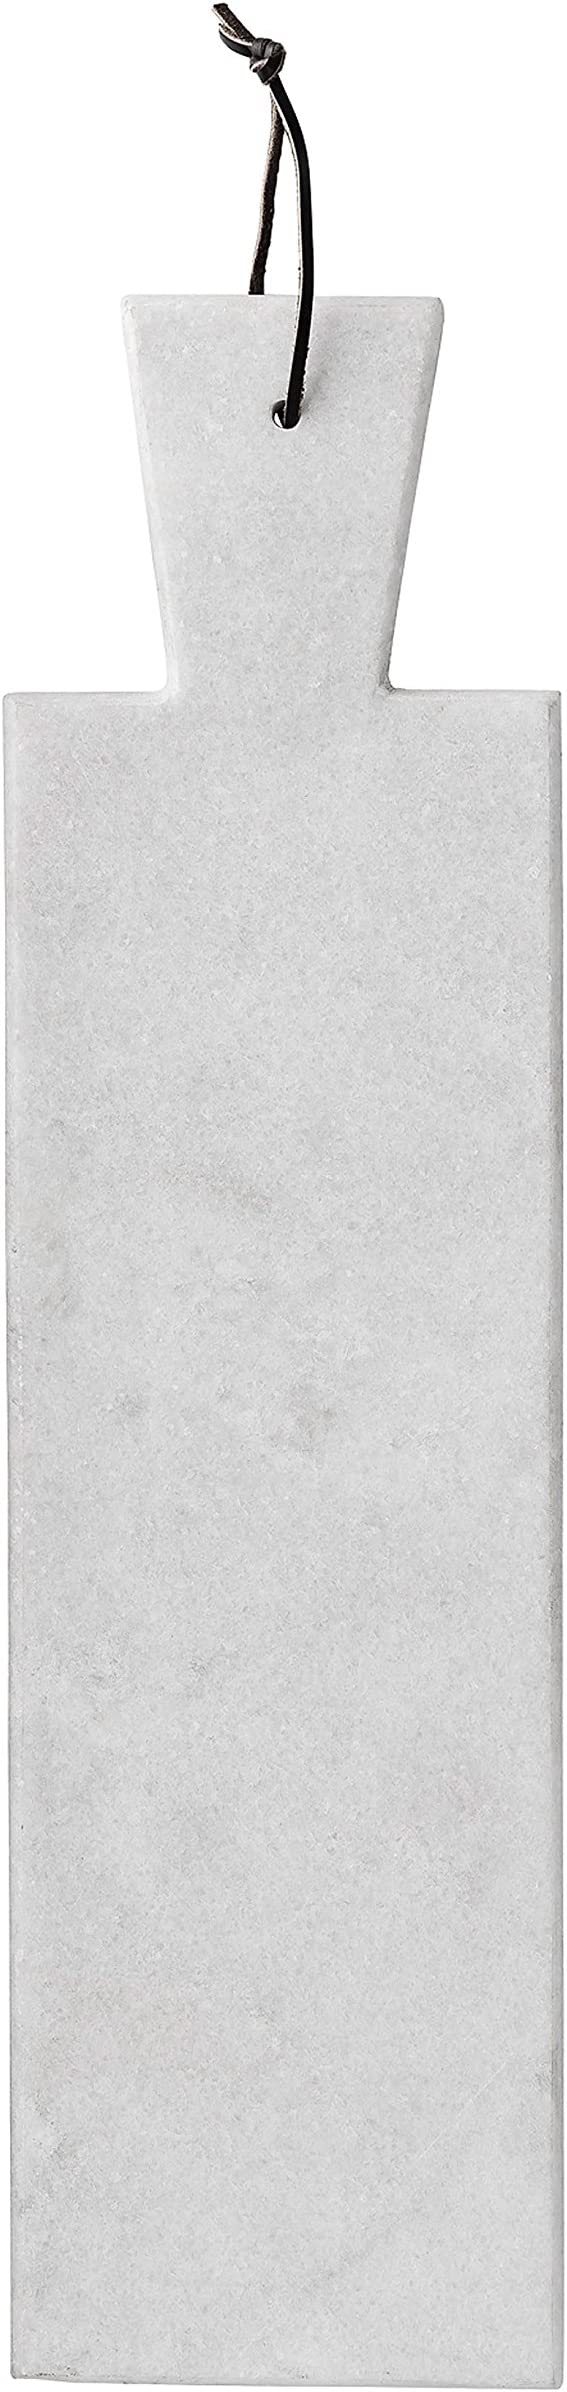 White Bloomingville A45200000 Marble Cutting Board with Strap